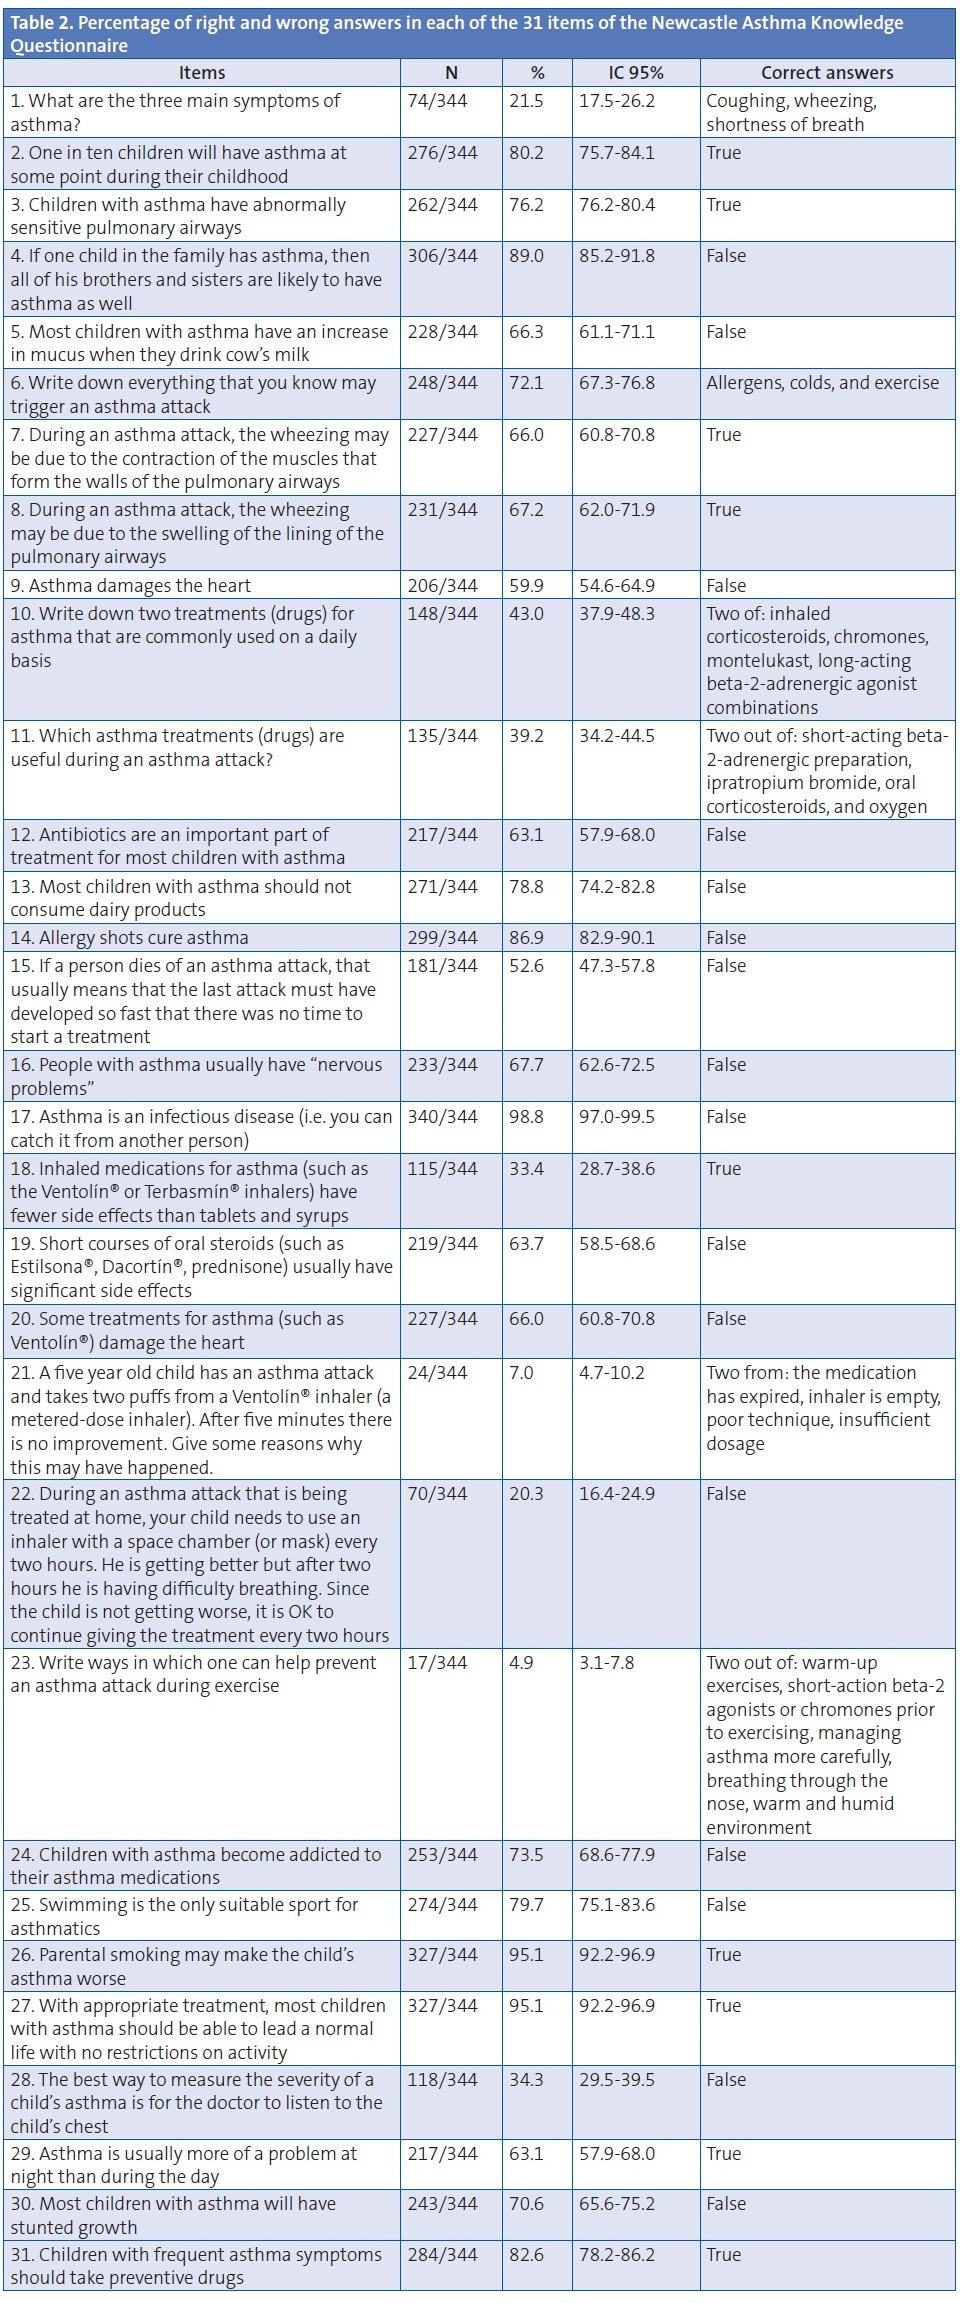 Table 2. Percentage of right and wrong answers in each of the 31 items of the Newcastle Asthma Knowledge Questionnaire